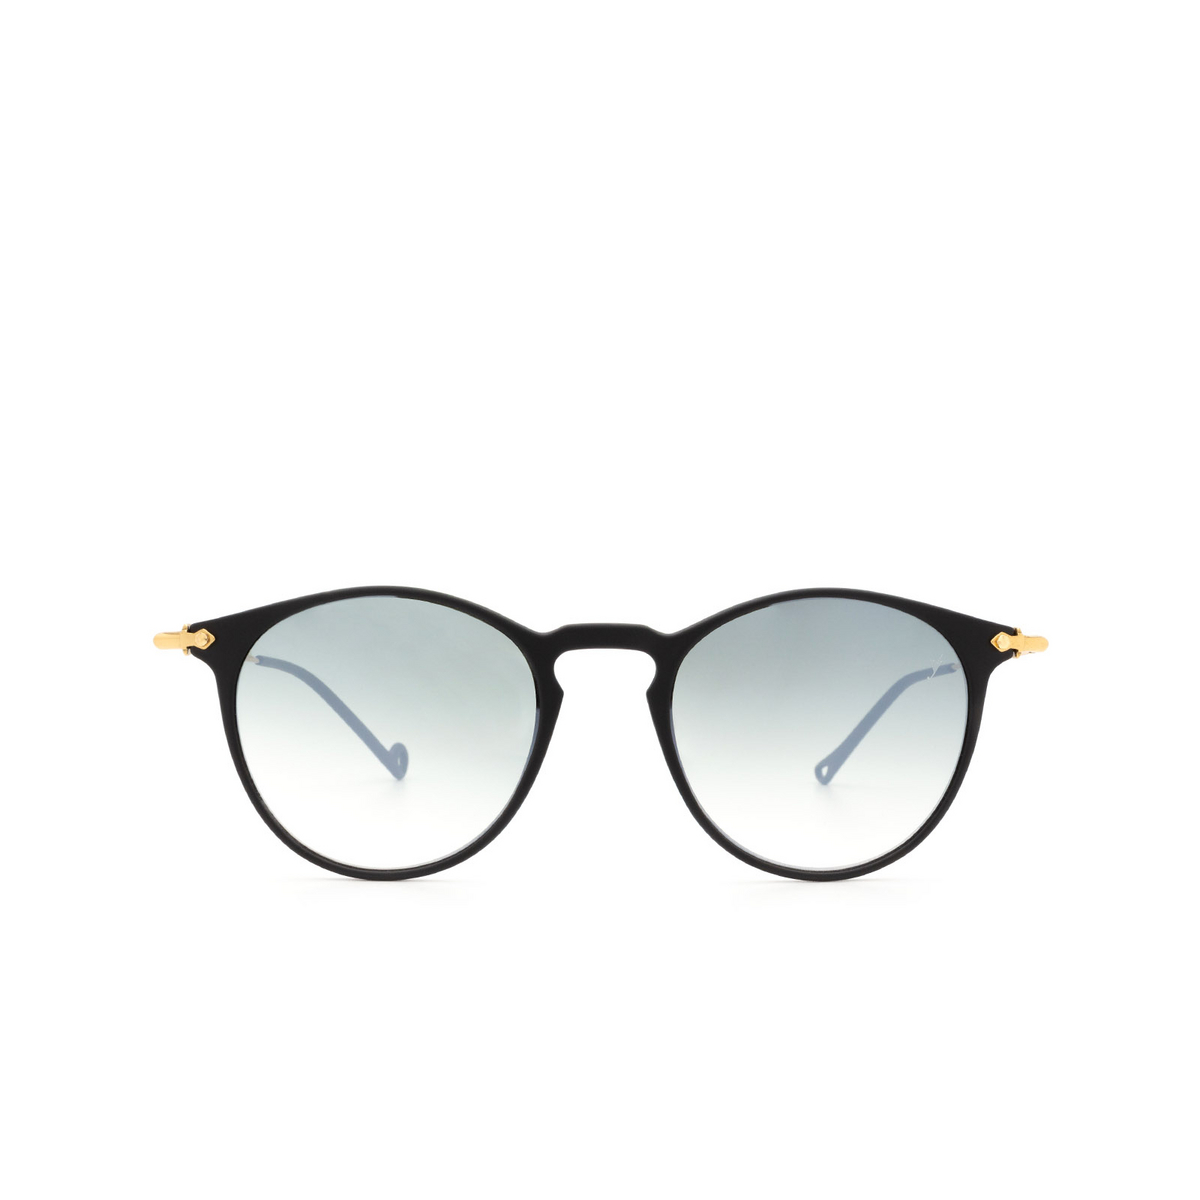 Eyepetizer® Round Sunglasses: Springs color Black C.A-4-25F - front view.